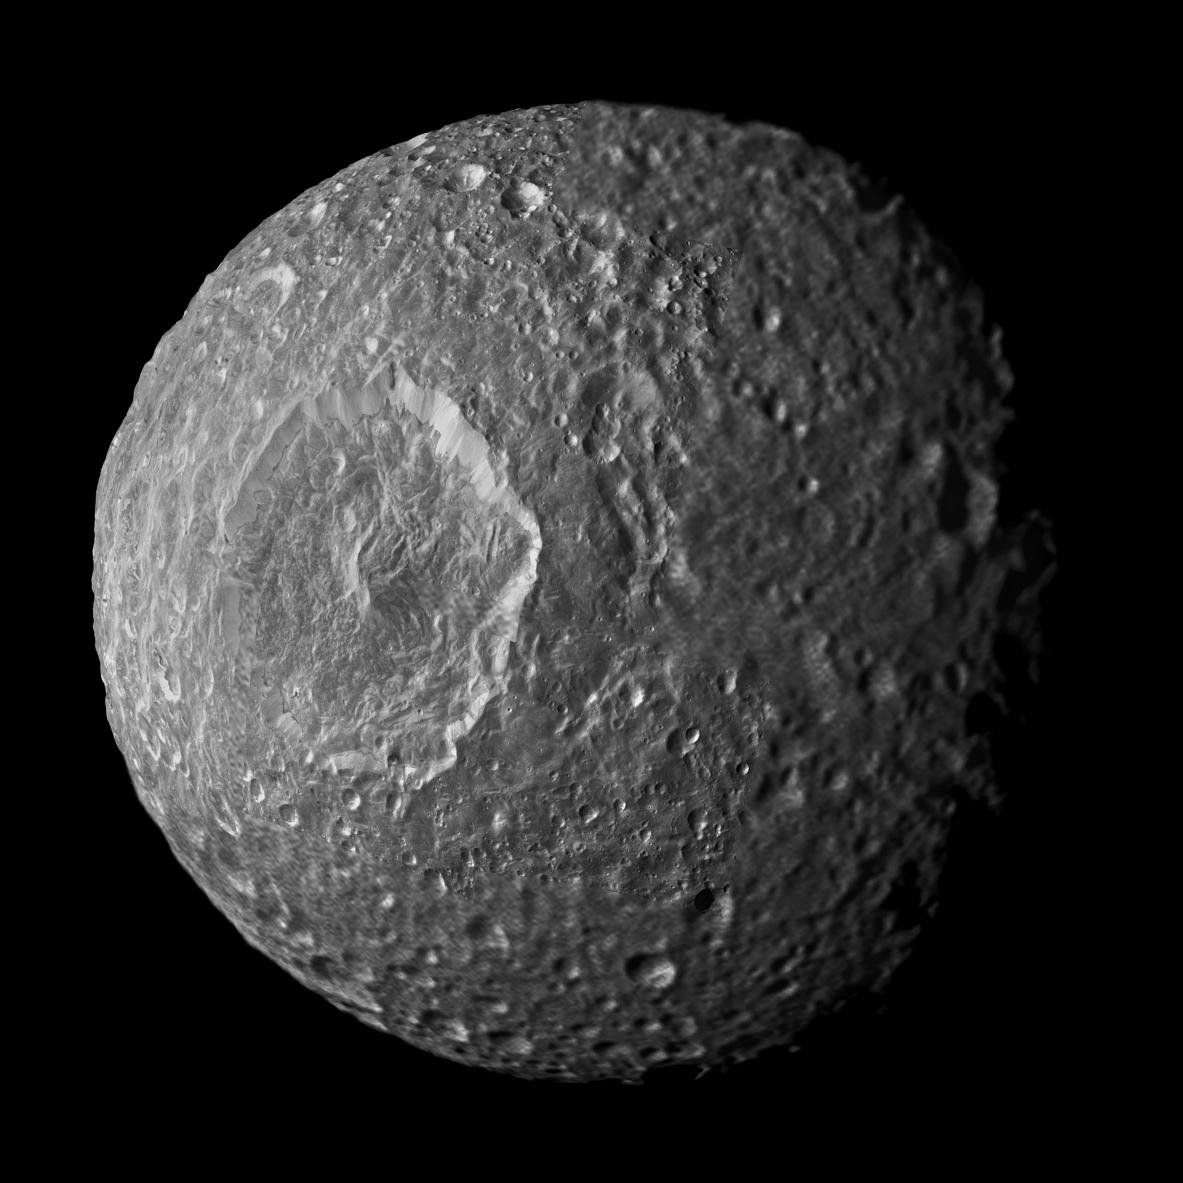 Mimas (396km in diameter) is probably the same age as Enceladus. - Image Credit: NASA/JPL/Space Science Institute